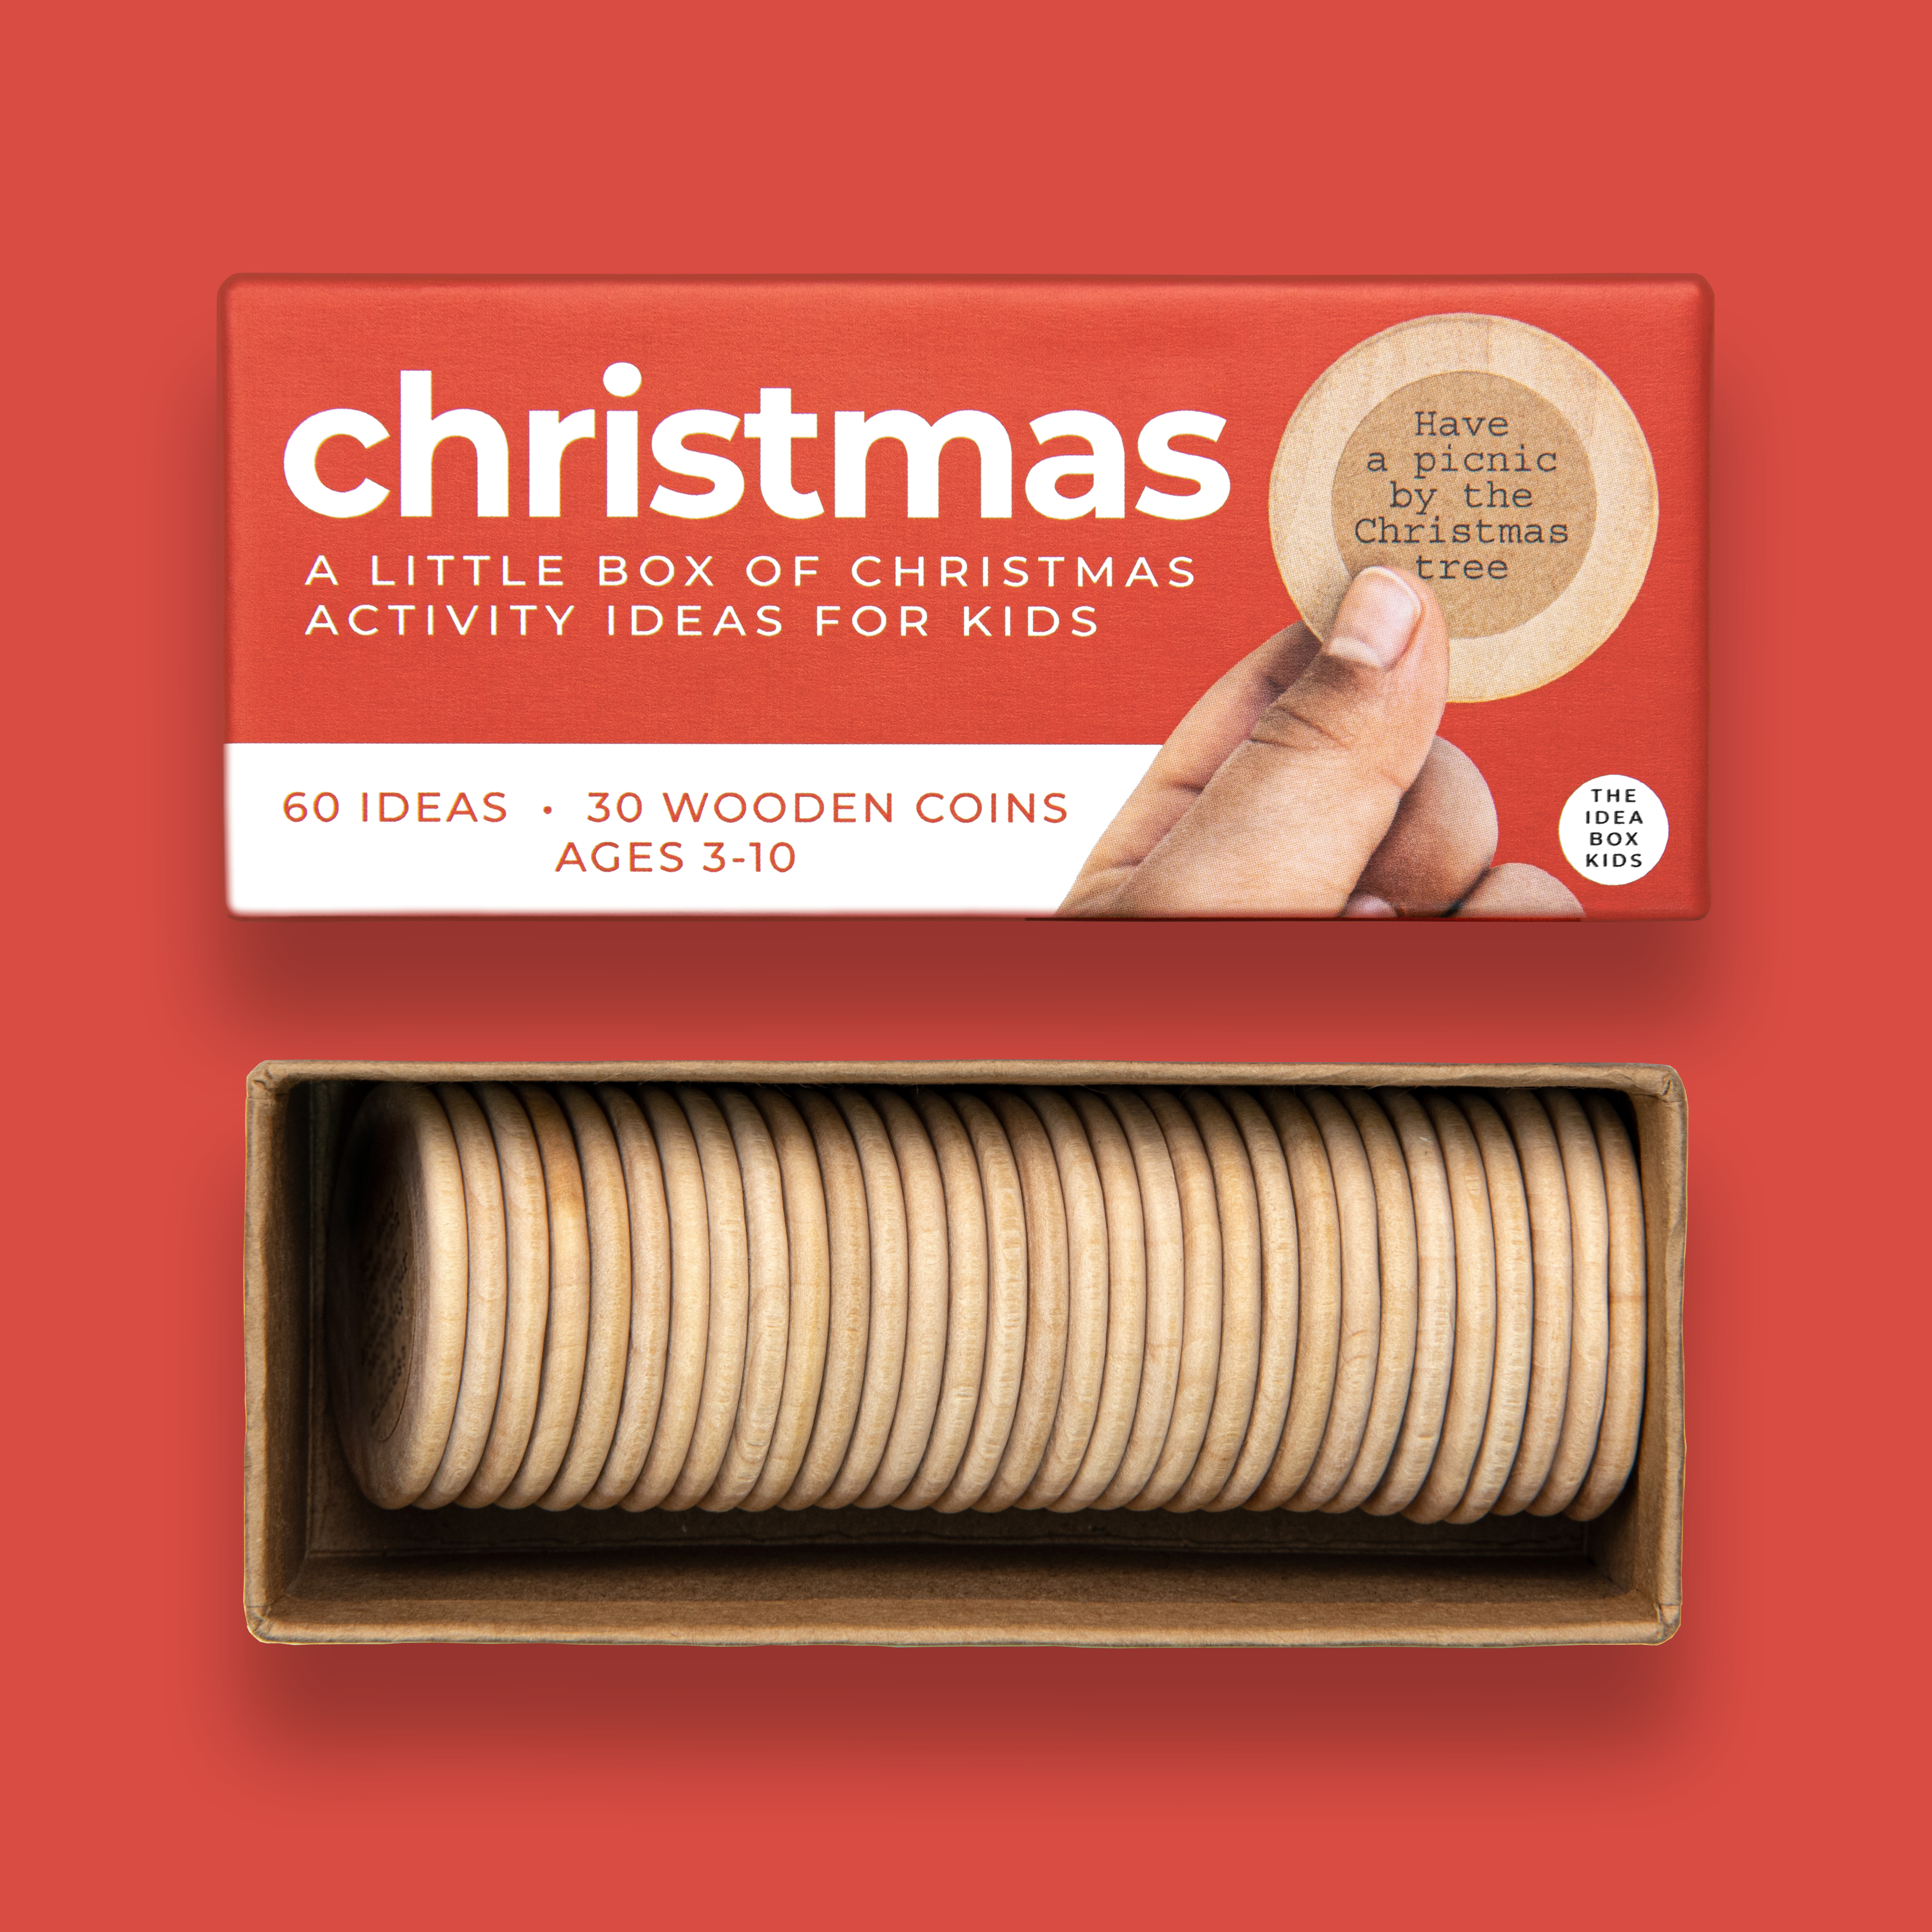 Simple Christmas Activities For Kids The Idea Box Kids